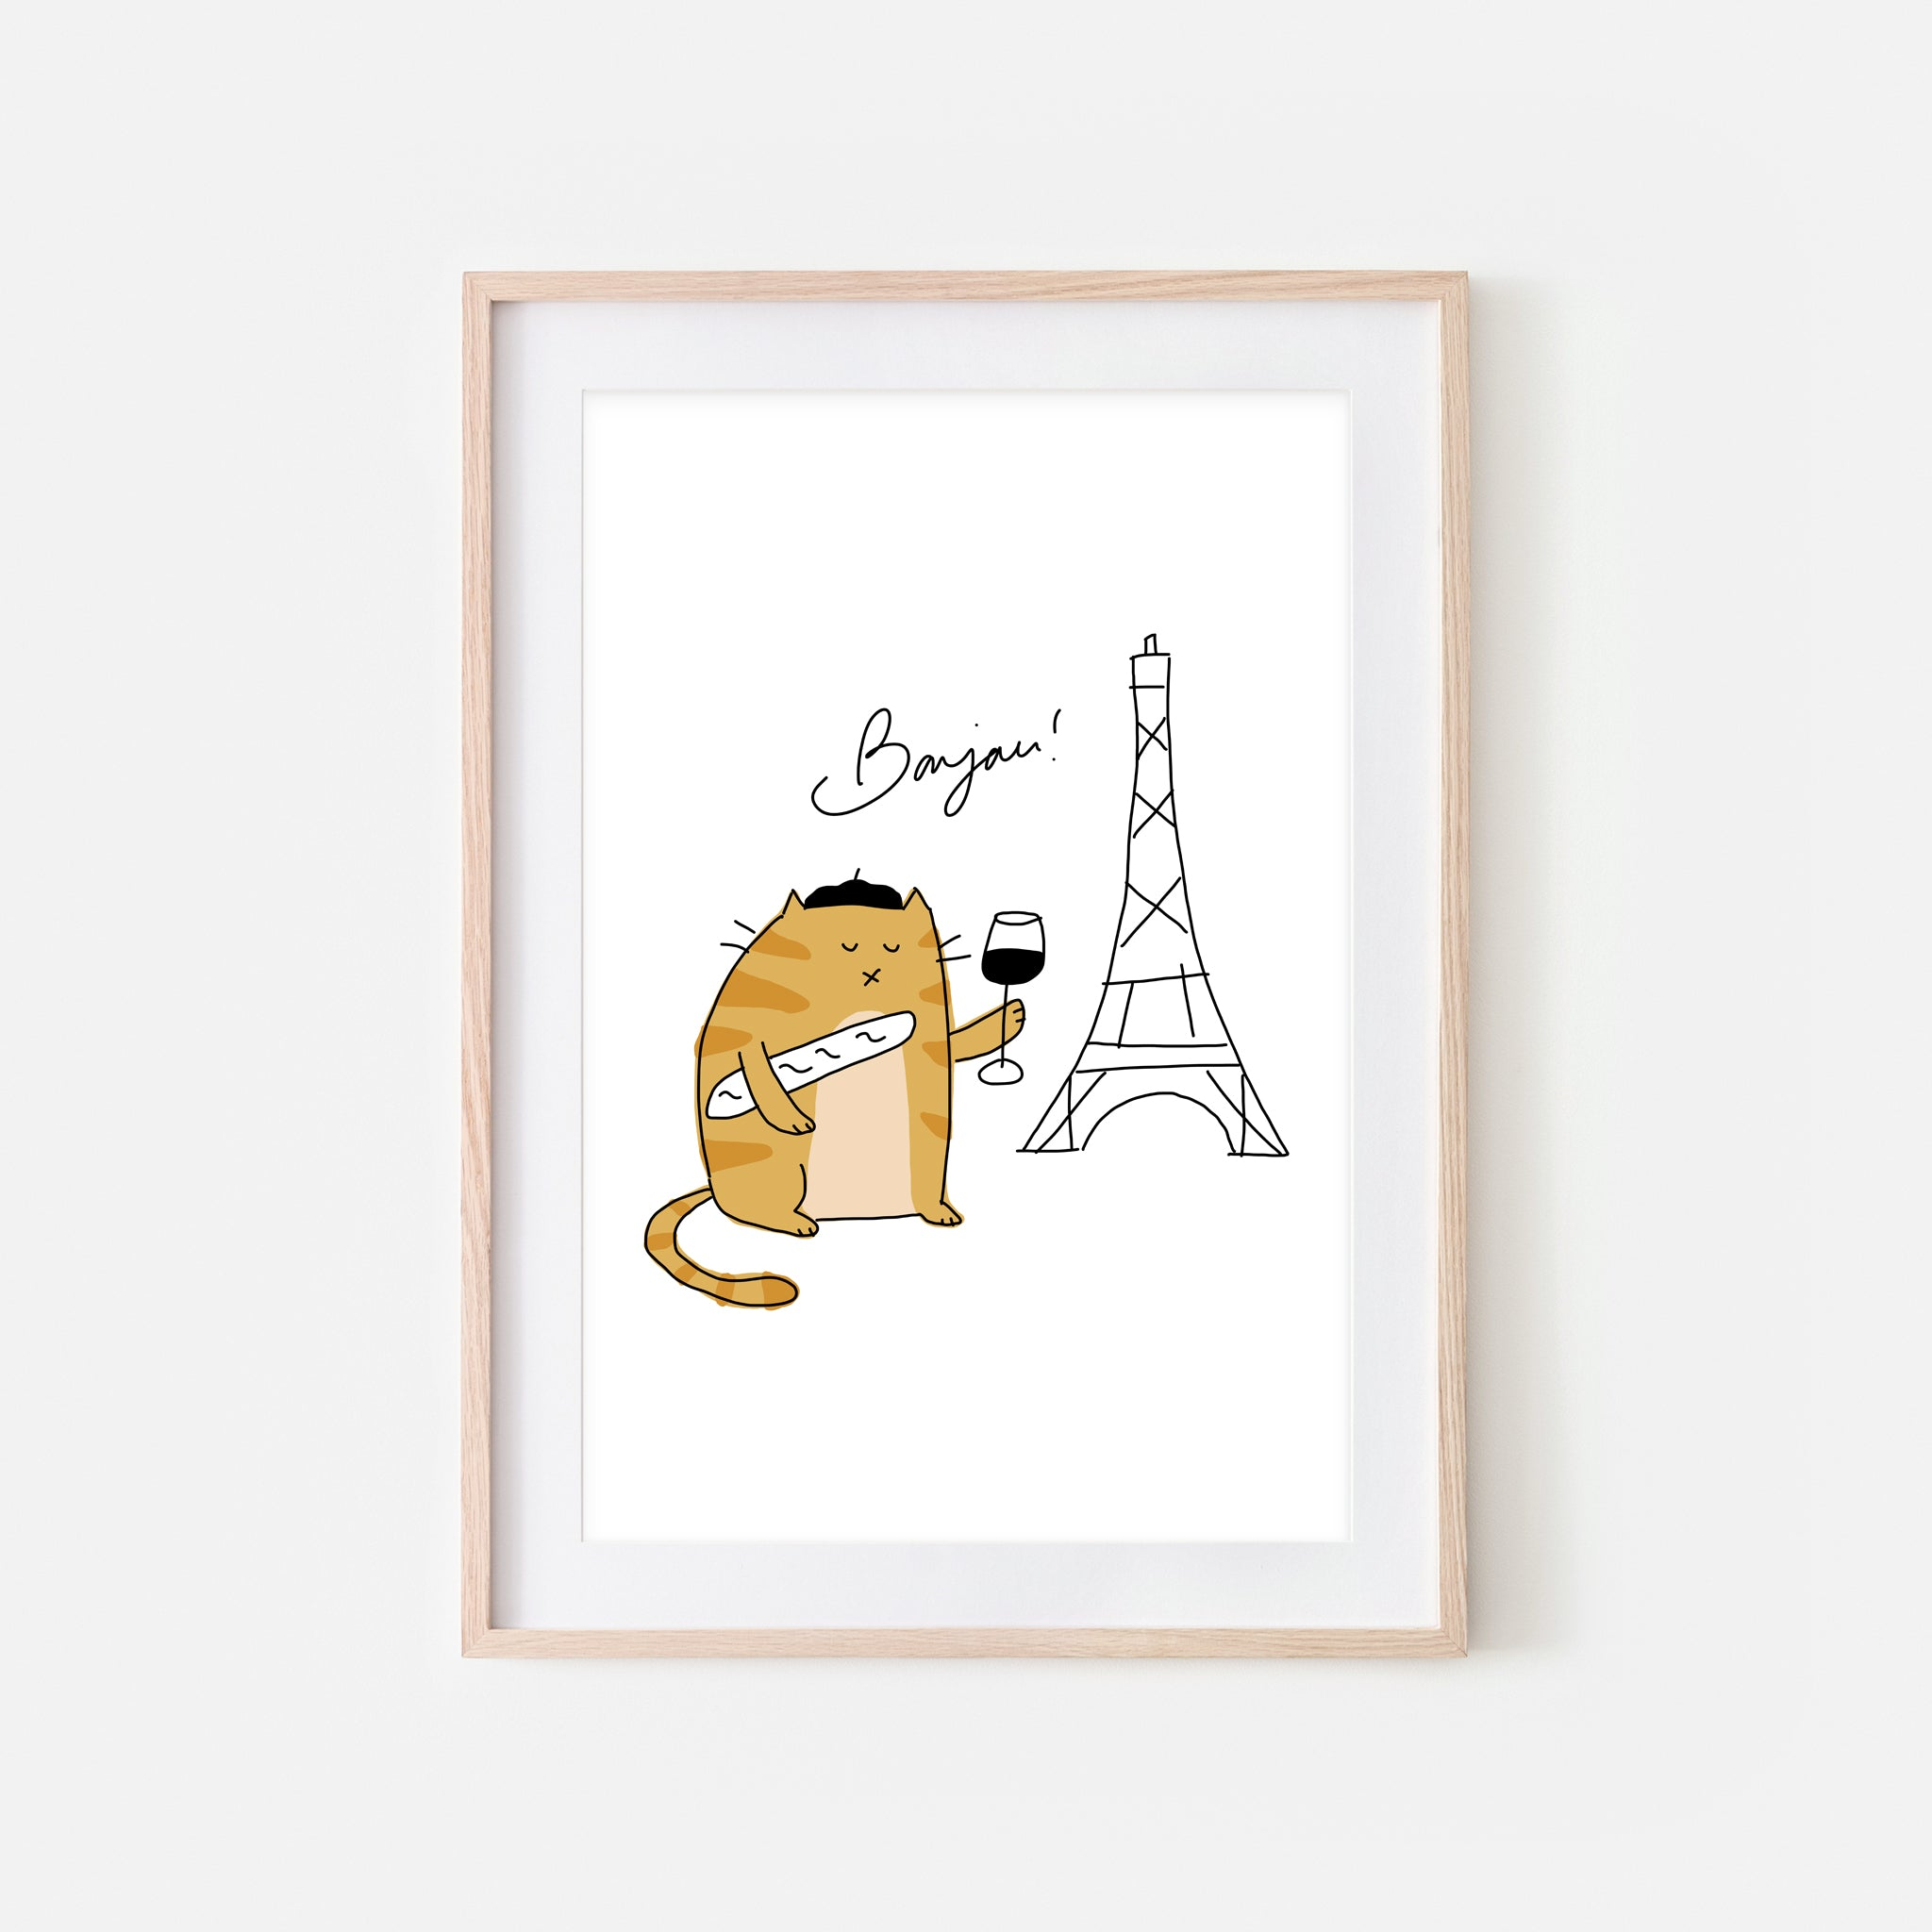 Bonjour French Orange Tabby Cat in Paris Wall Art - Funny Cute Line Drawing Illustration - Print, Poster or Printable Download